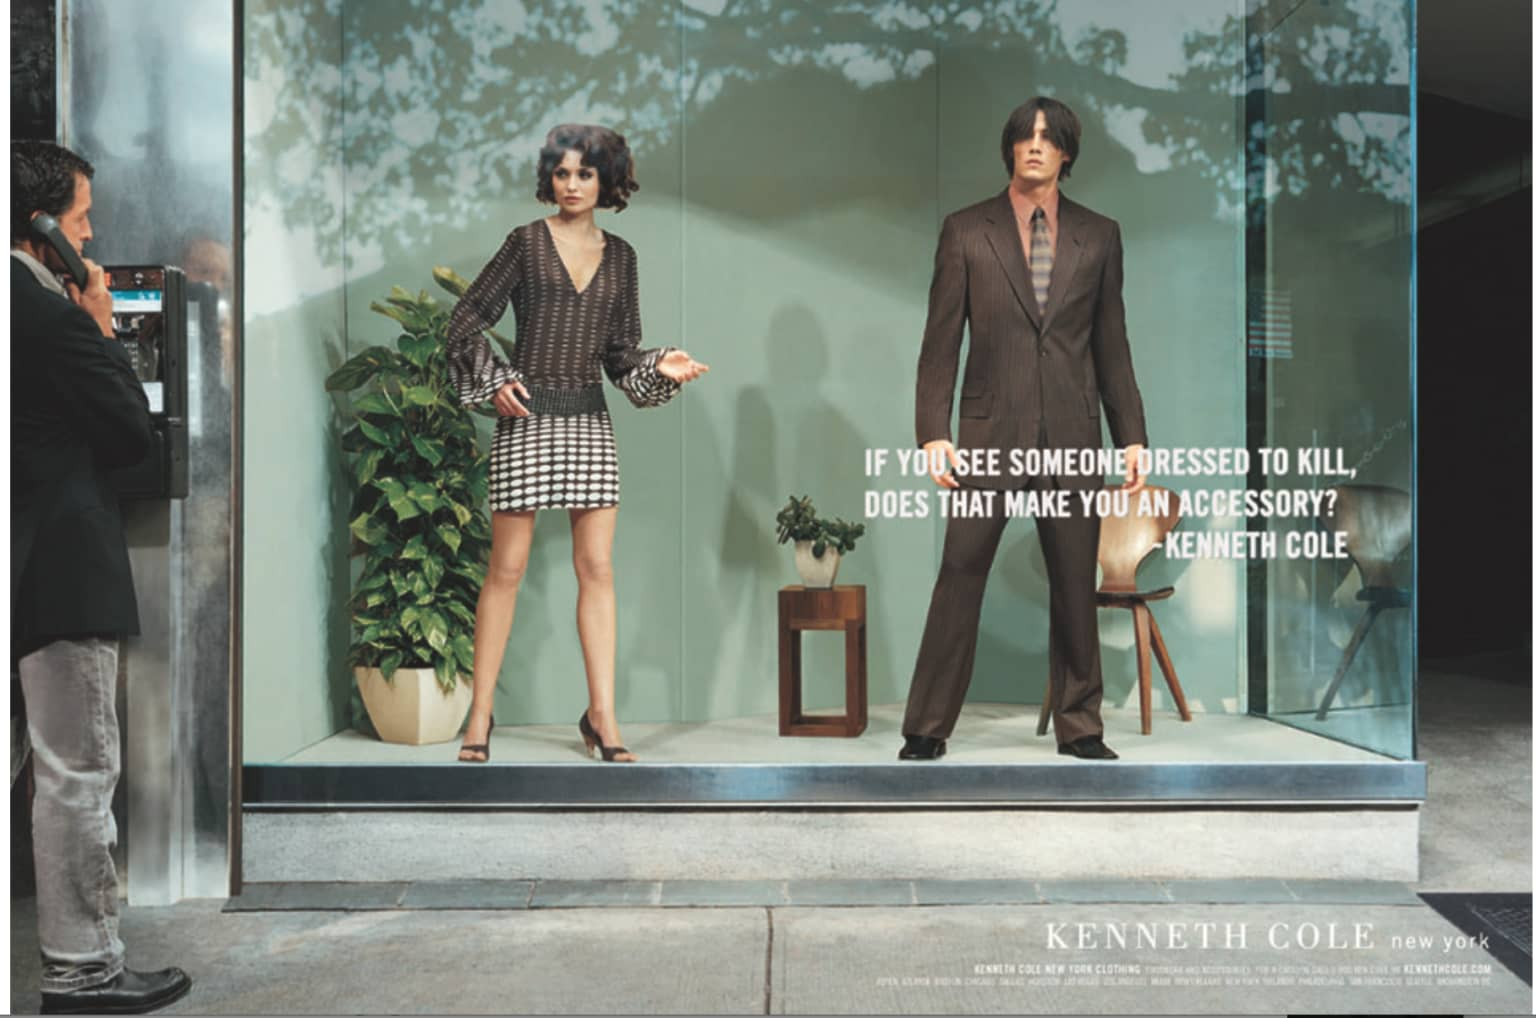 Kenneth Cole National Ad Campaign.